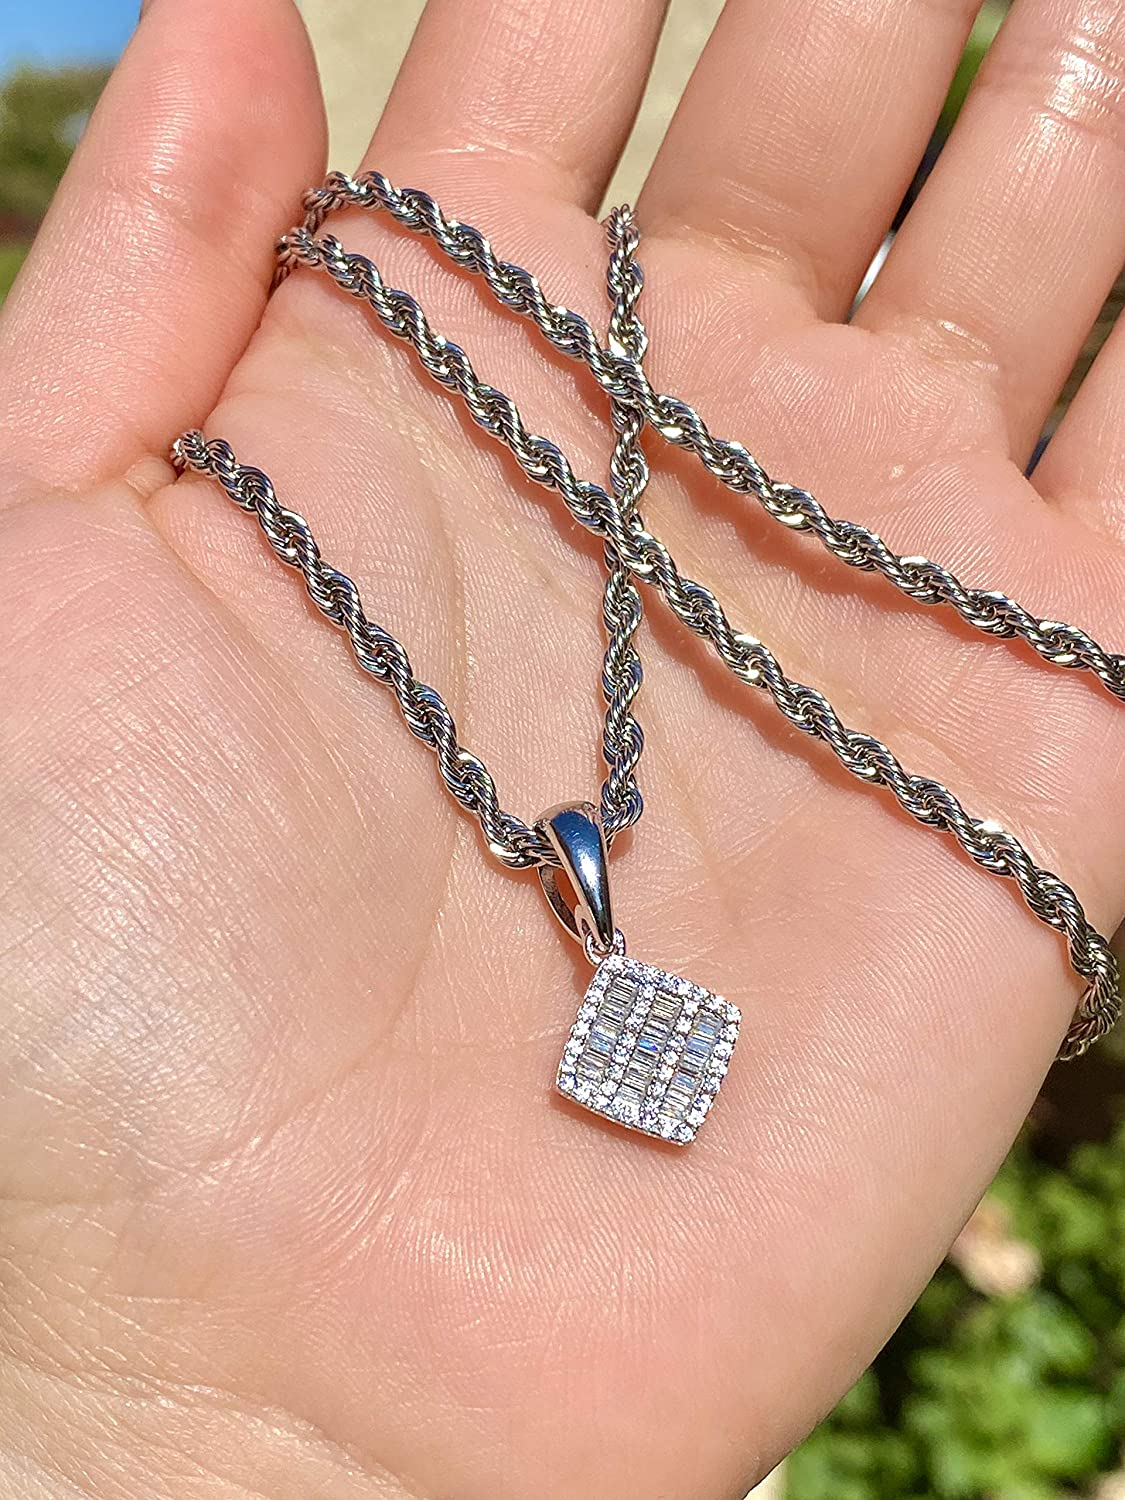 Baguette Tag Men Women 925 Italy White Gold Finish Iced Silver Charm Ice Out Pendant Stainless Steel Real 2 mm Rope Chain Necklace Iced Pendant Rope Necklace 16-24 Mans Jewelry